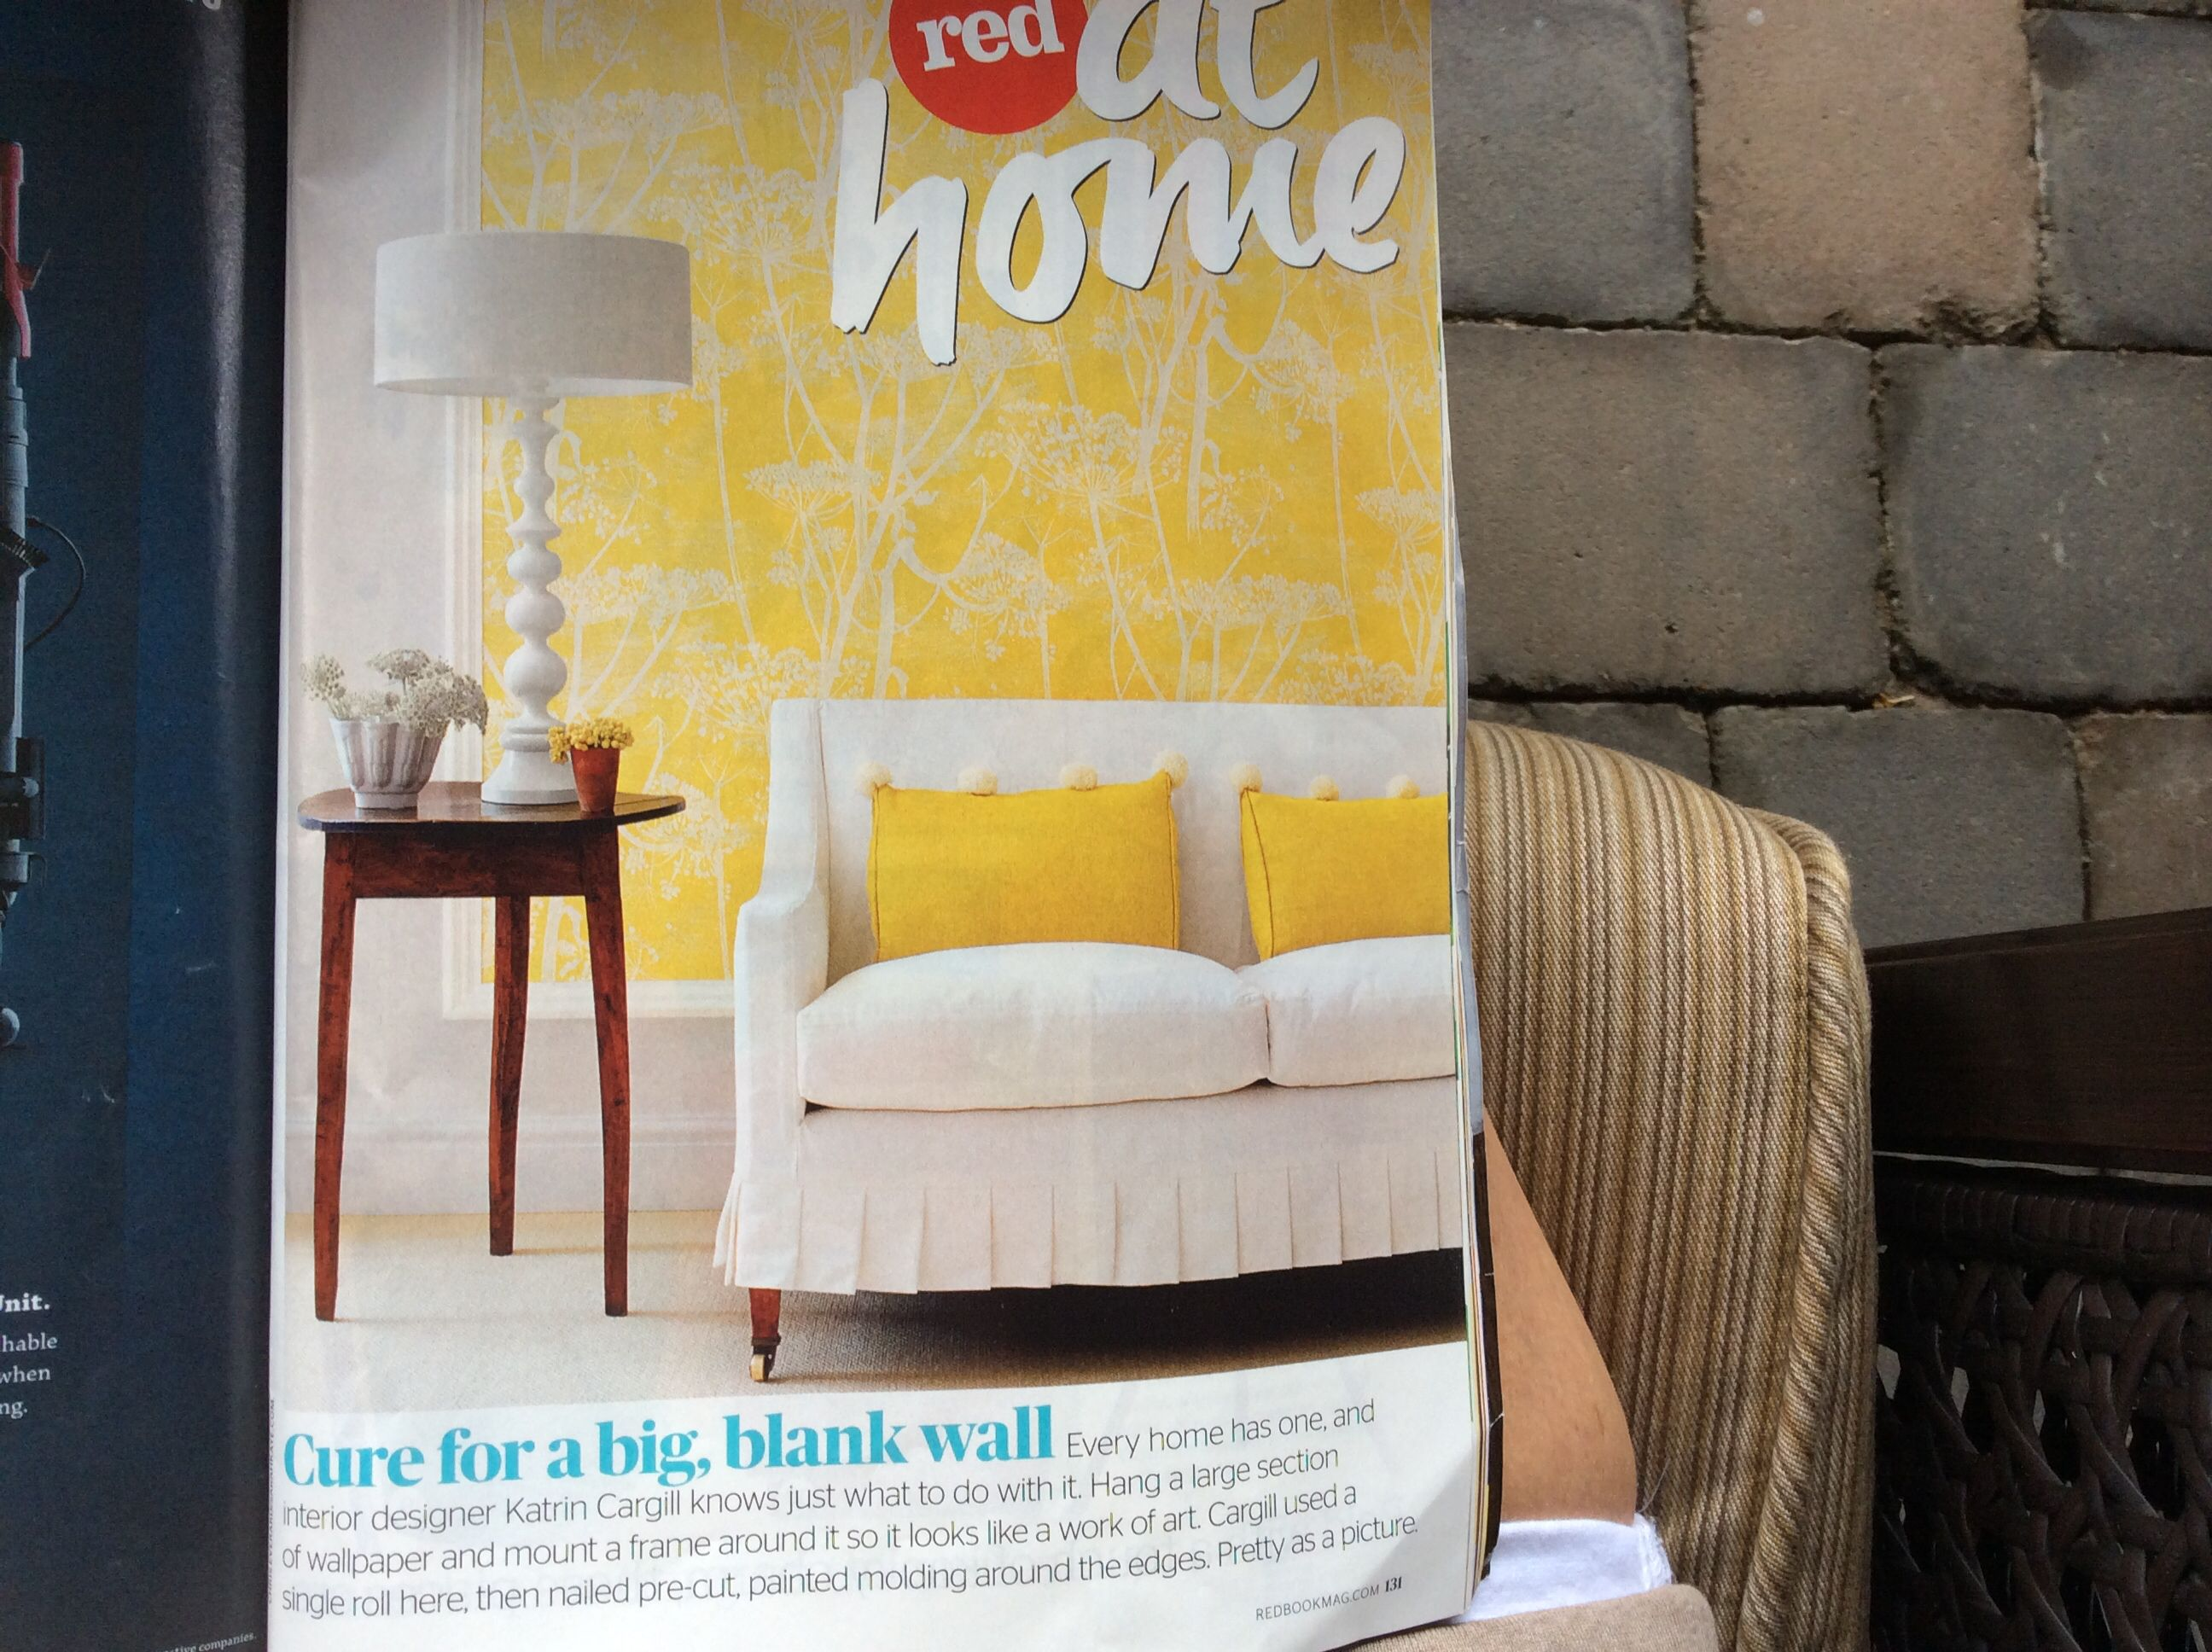 Cool wallpaper and frame idea for a blank wall.  Redbook mag. August 2014